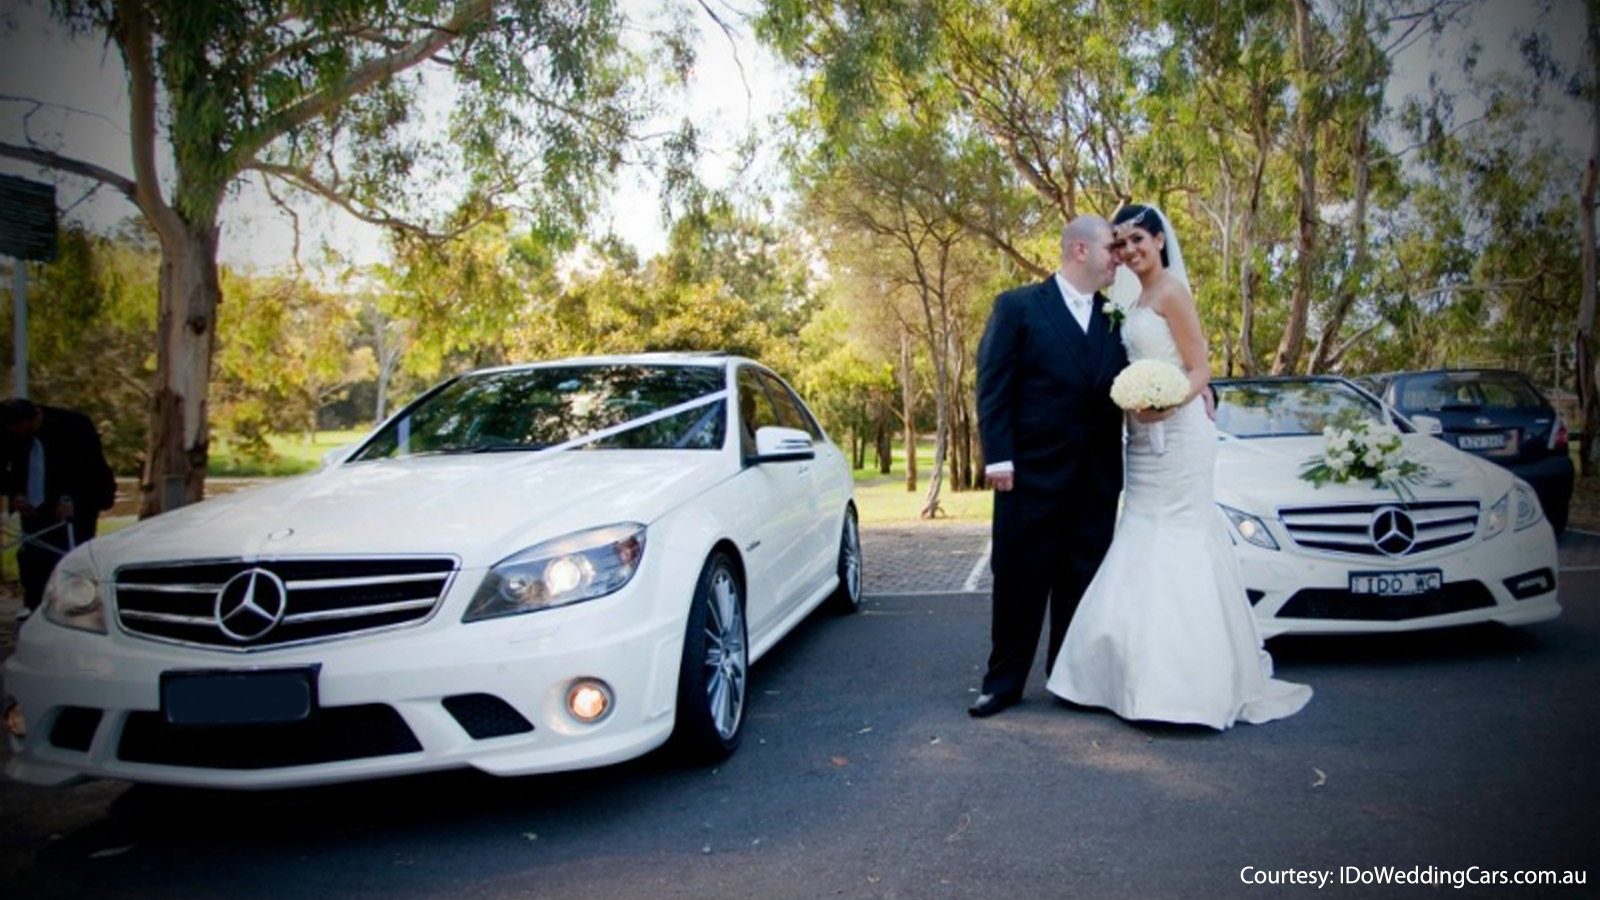 5 Times Mercedes-Benz Was Decorated for a Wedding | Mbworld